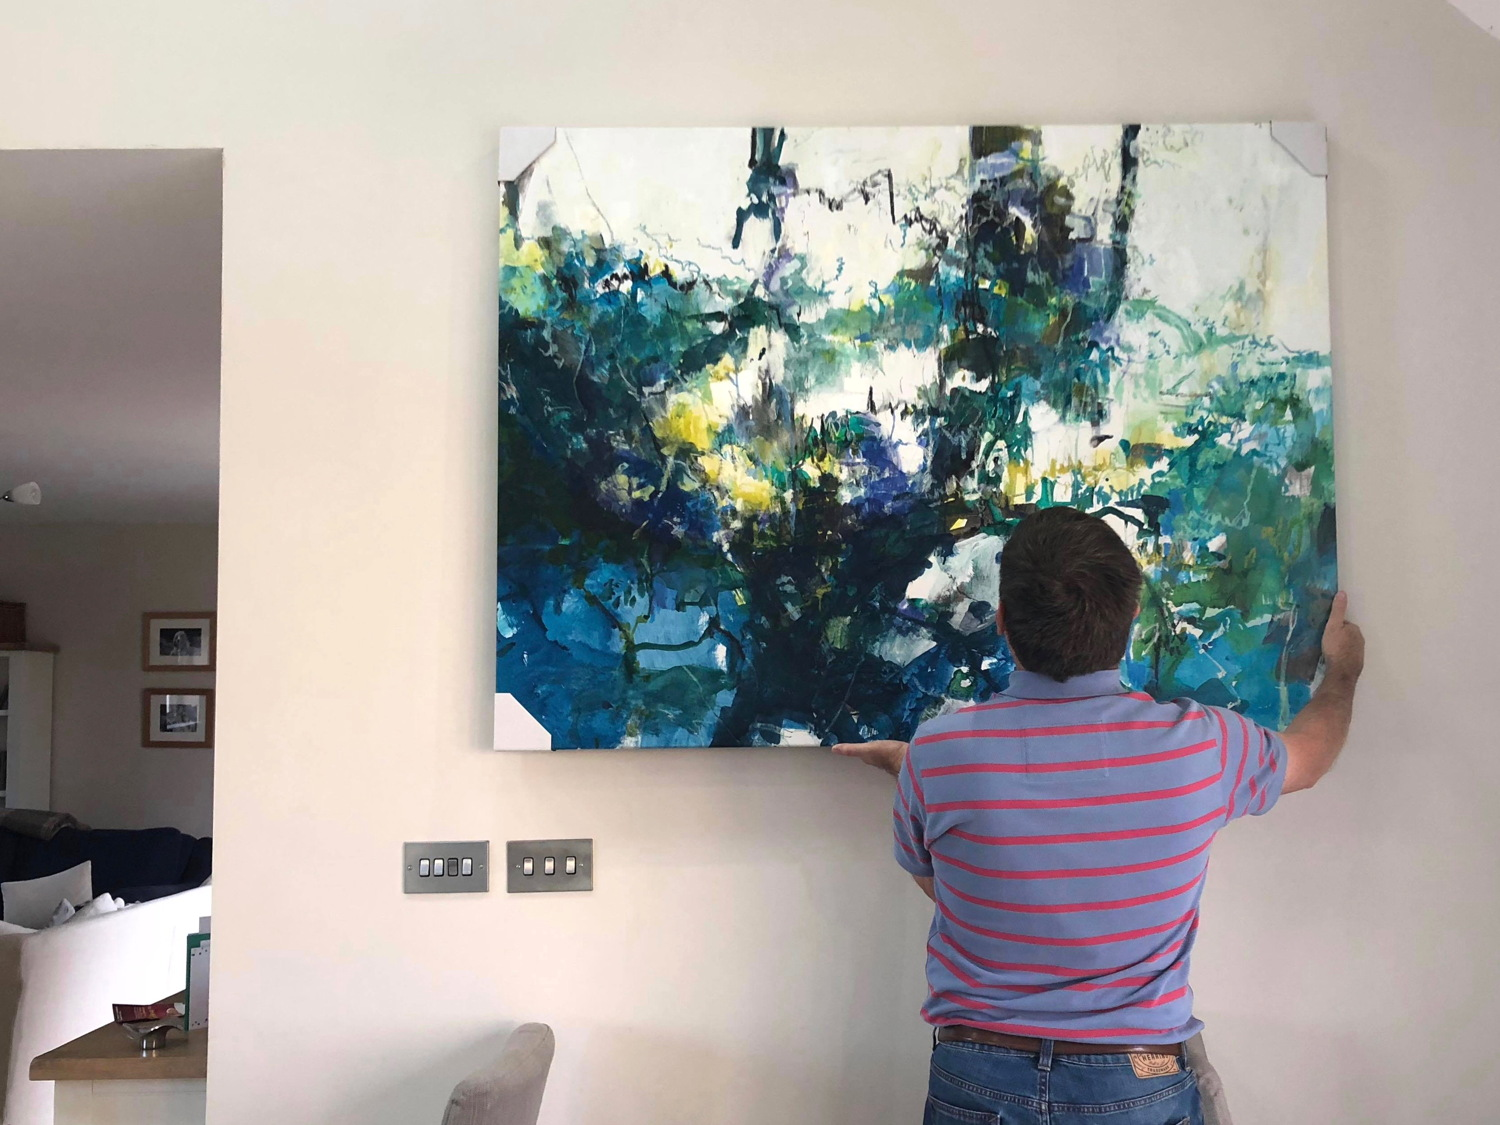 Ella Clocksin (2018)  Soundscape 1 , acrylic on canvas, 106 x 141 cm. Client trying the painting for size in the intended space.